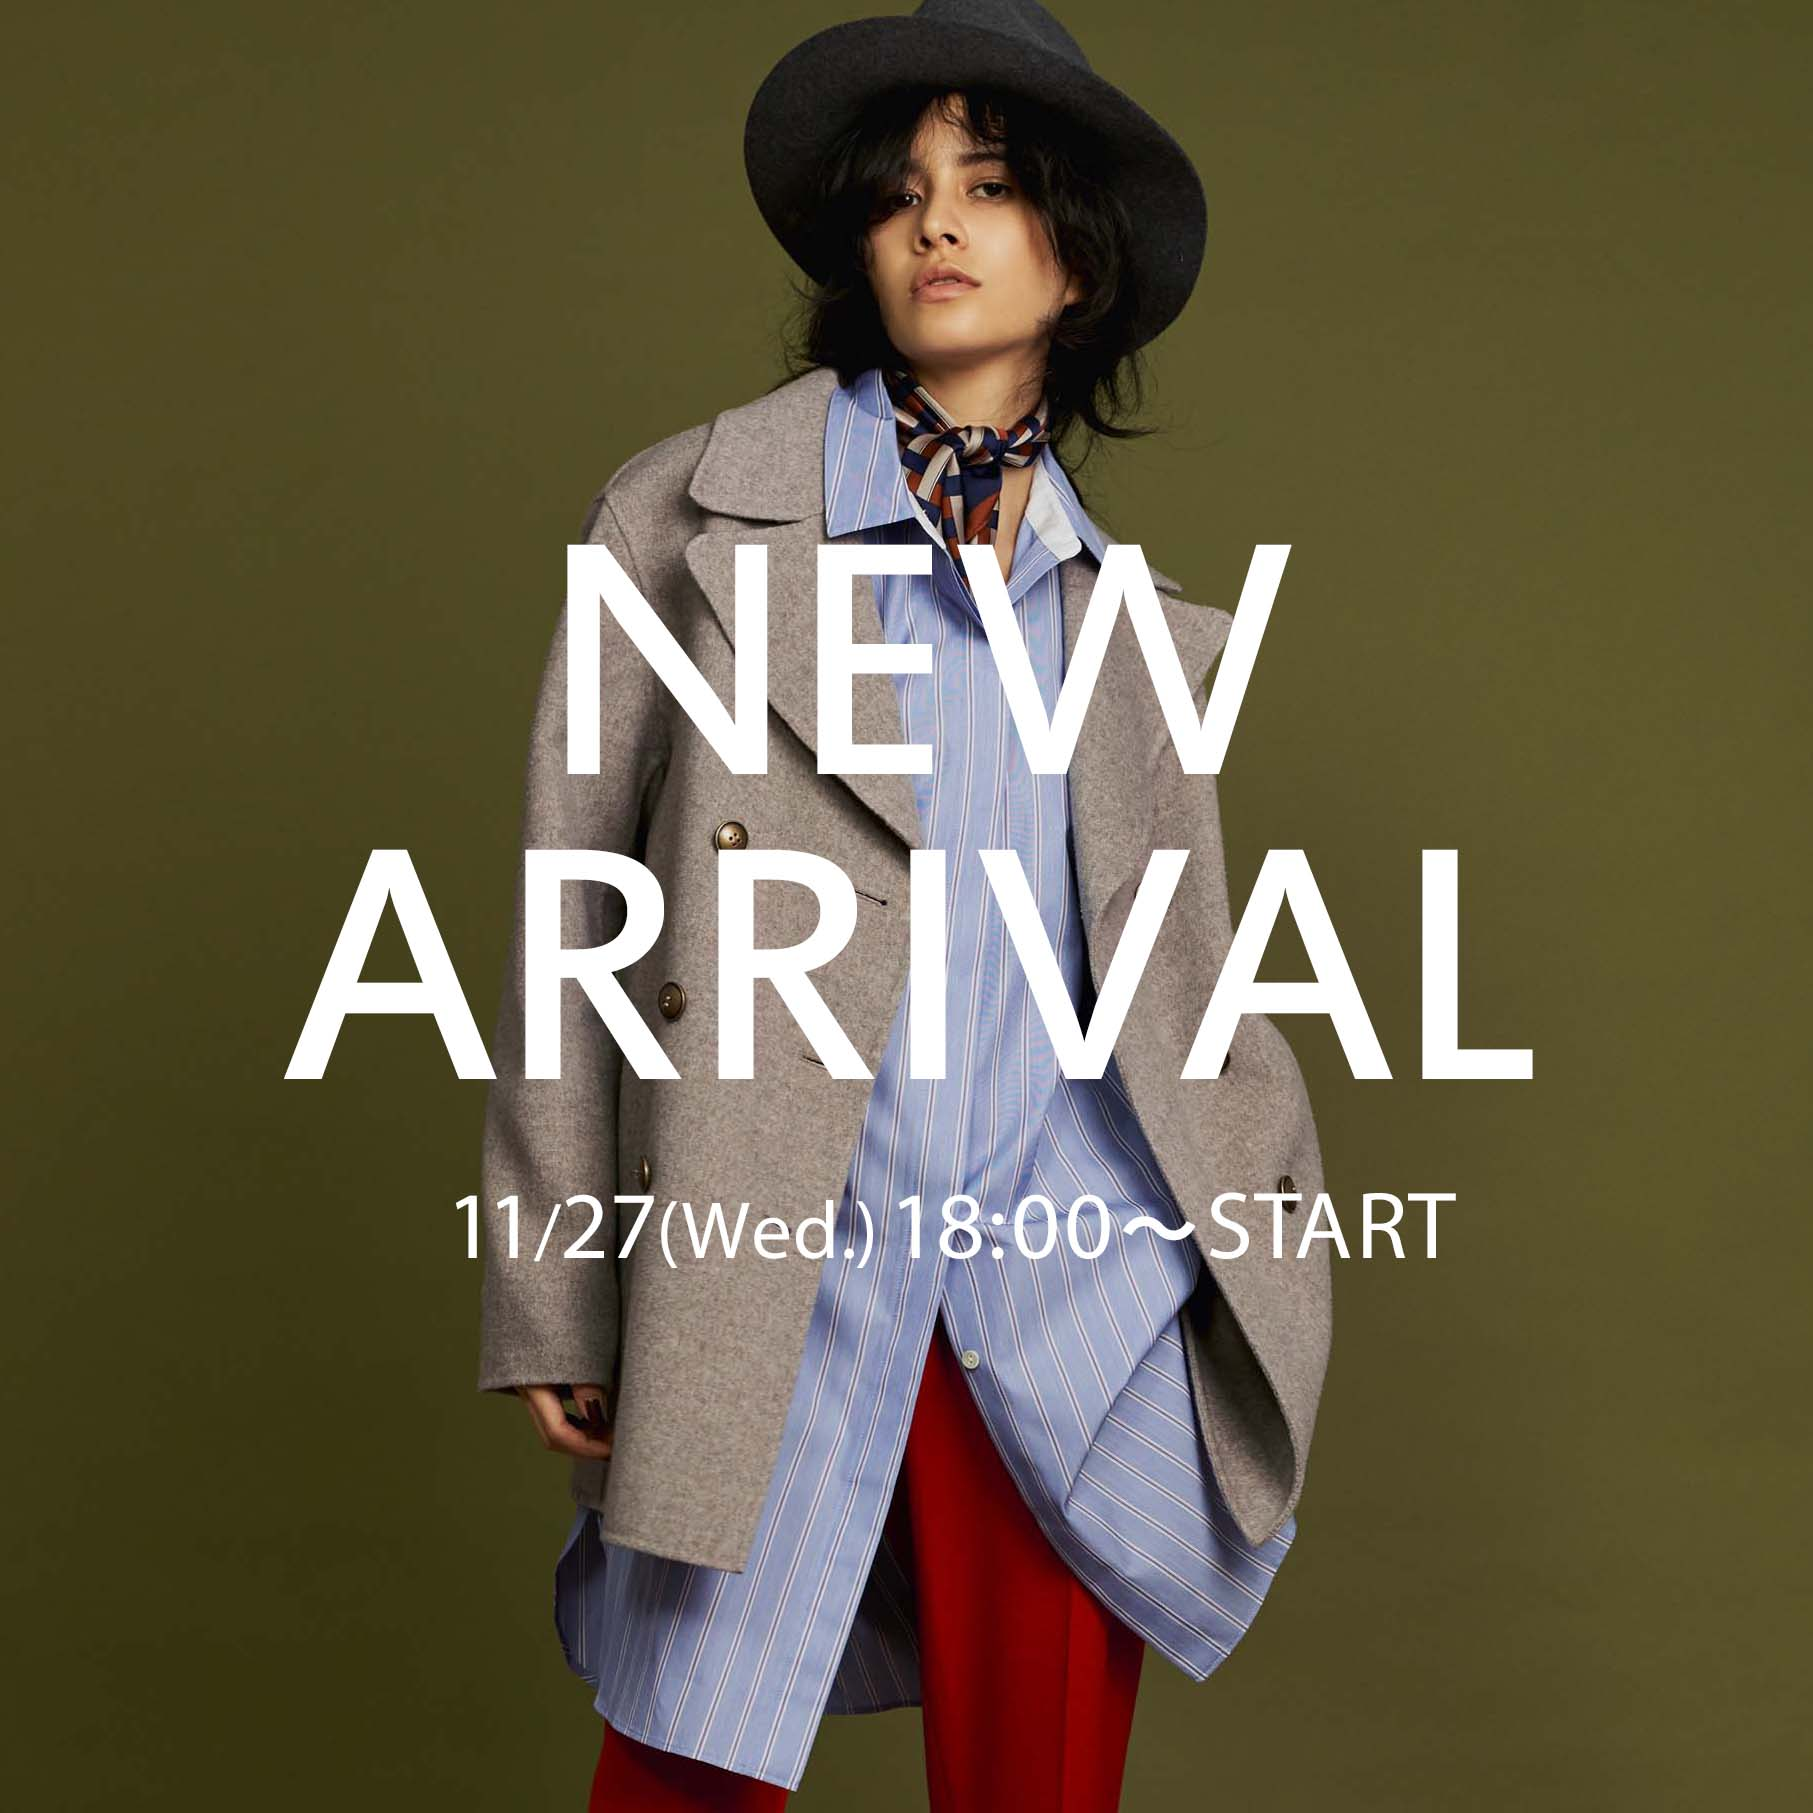 11/27(Wed.)18:00~NEW ARRIVAL